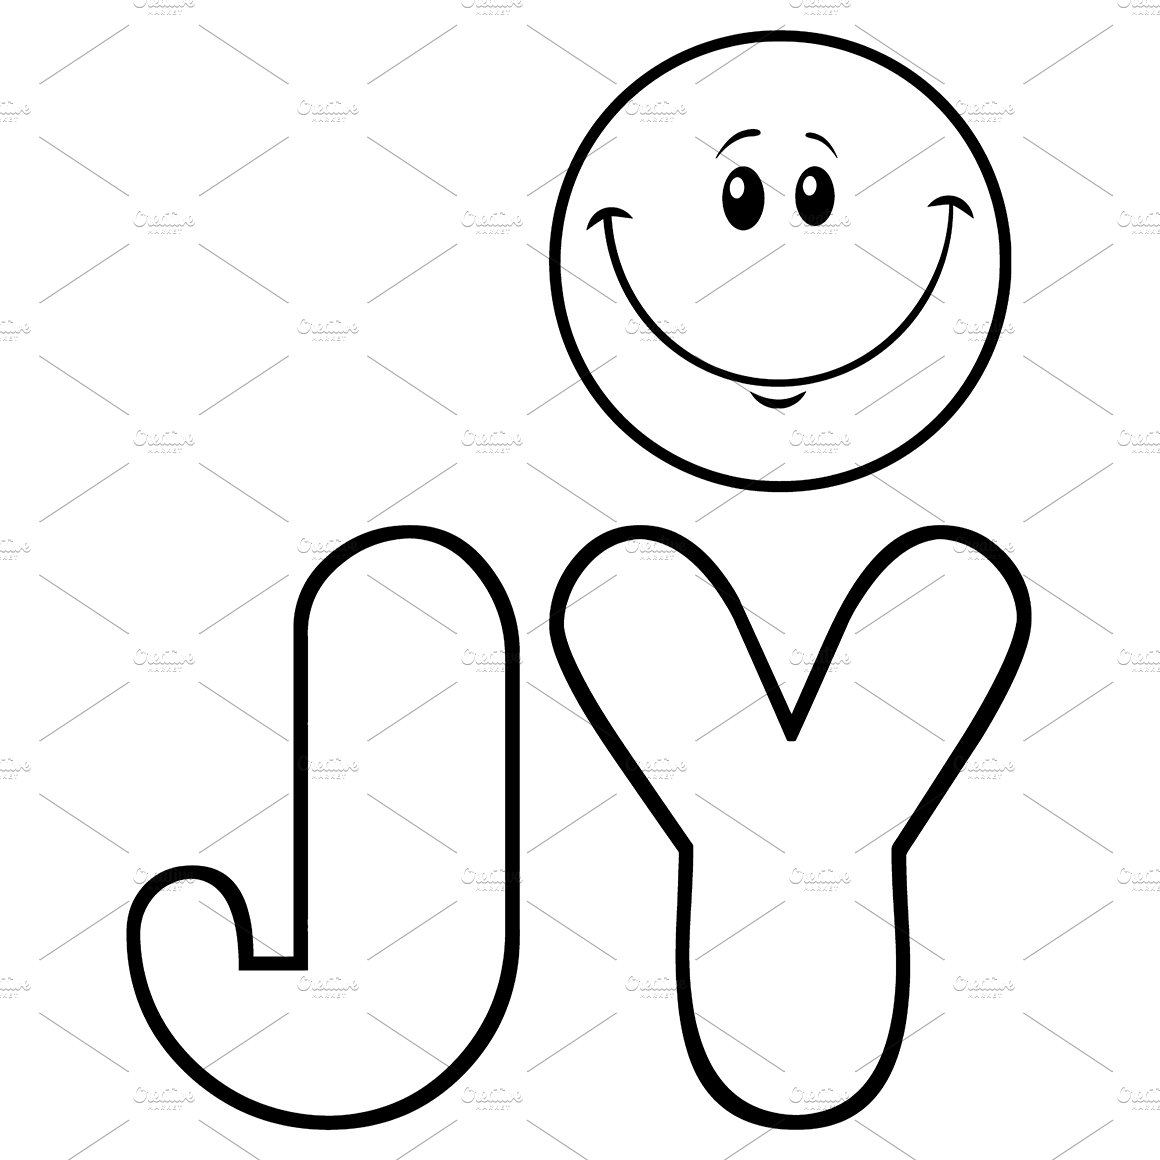 Black And White Joy With Smiley Face ~ Illustrations